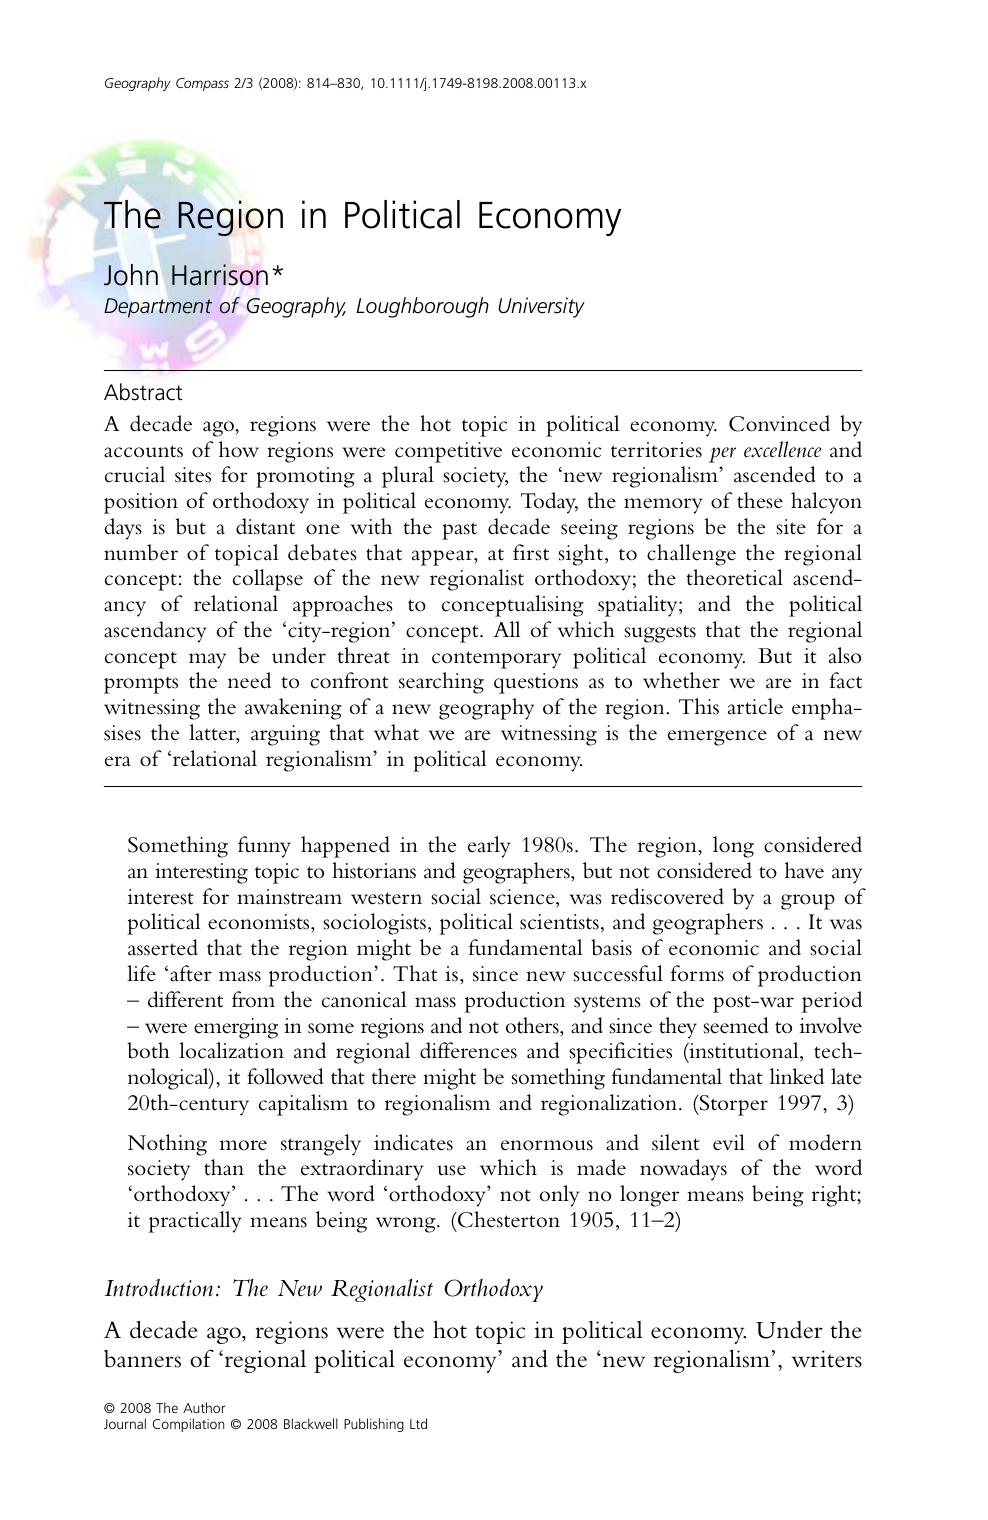 003 Research Paper Political Economy Topics Awesome International Global Full